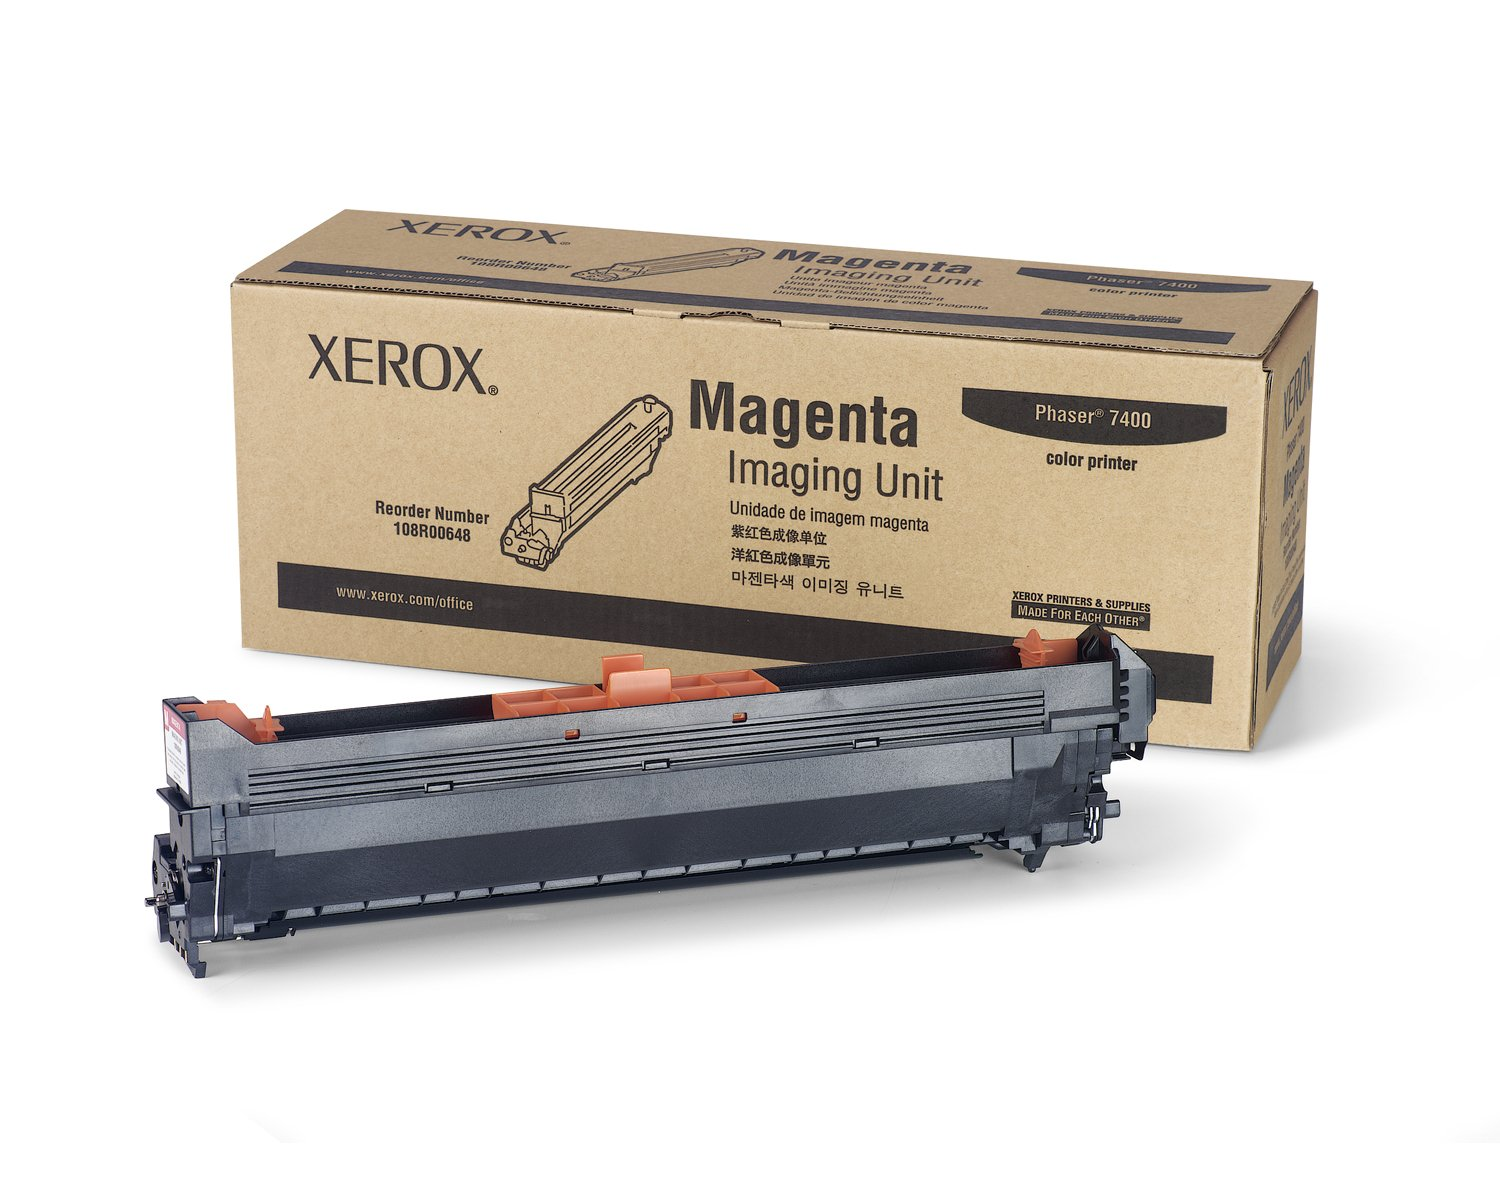 Xerox Phaser 7400 Imaging Unit 108R00648 Magenta Xerox (UK) Ltd. Xerox.108R00648